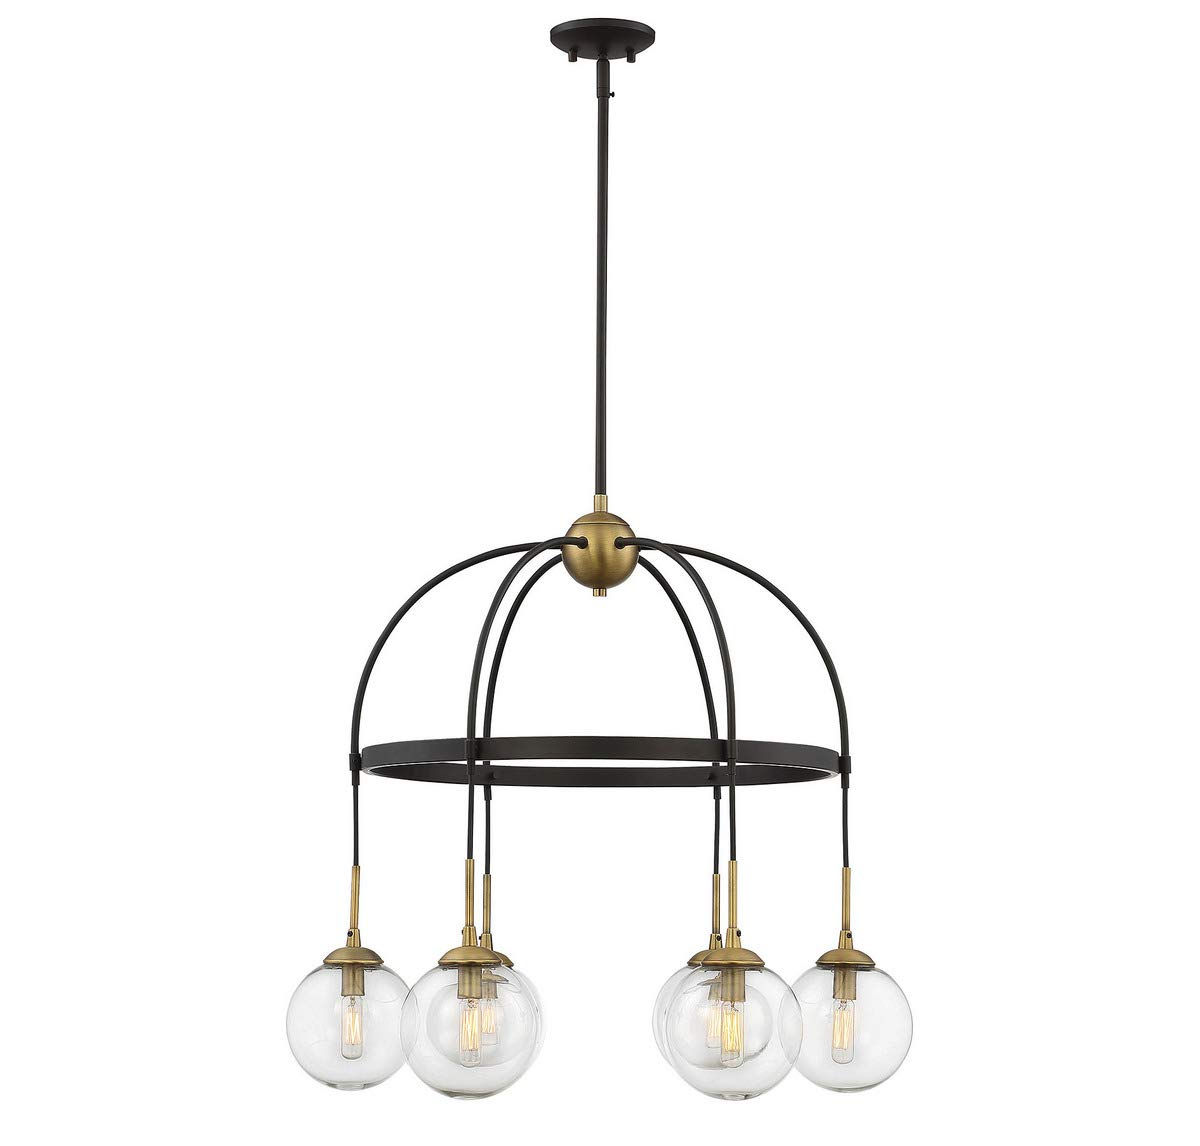 Alden 6 Light Globe Chandeliers With Regard To Most Recently Released Savoy House Fulton 6 Light Chandelier In English Bronze (View 7 of 25)